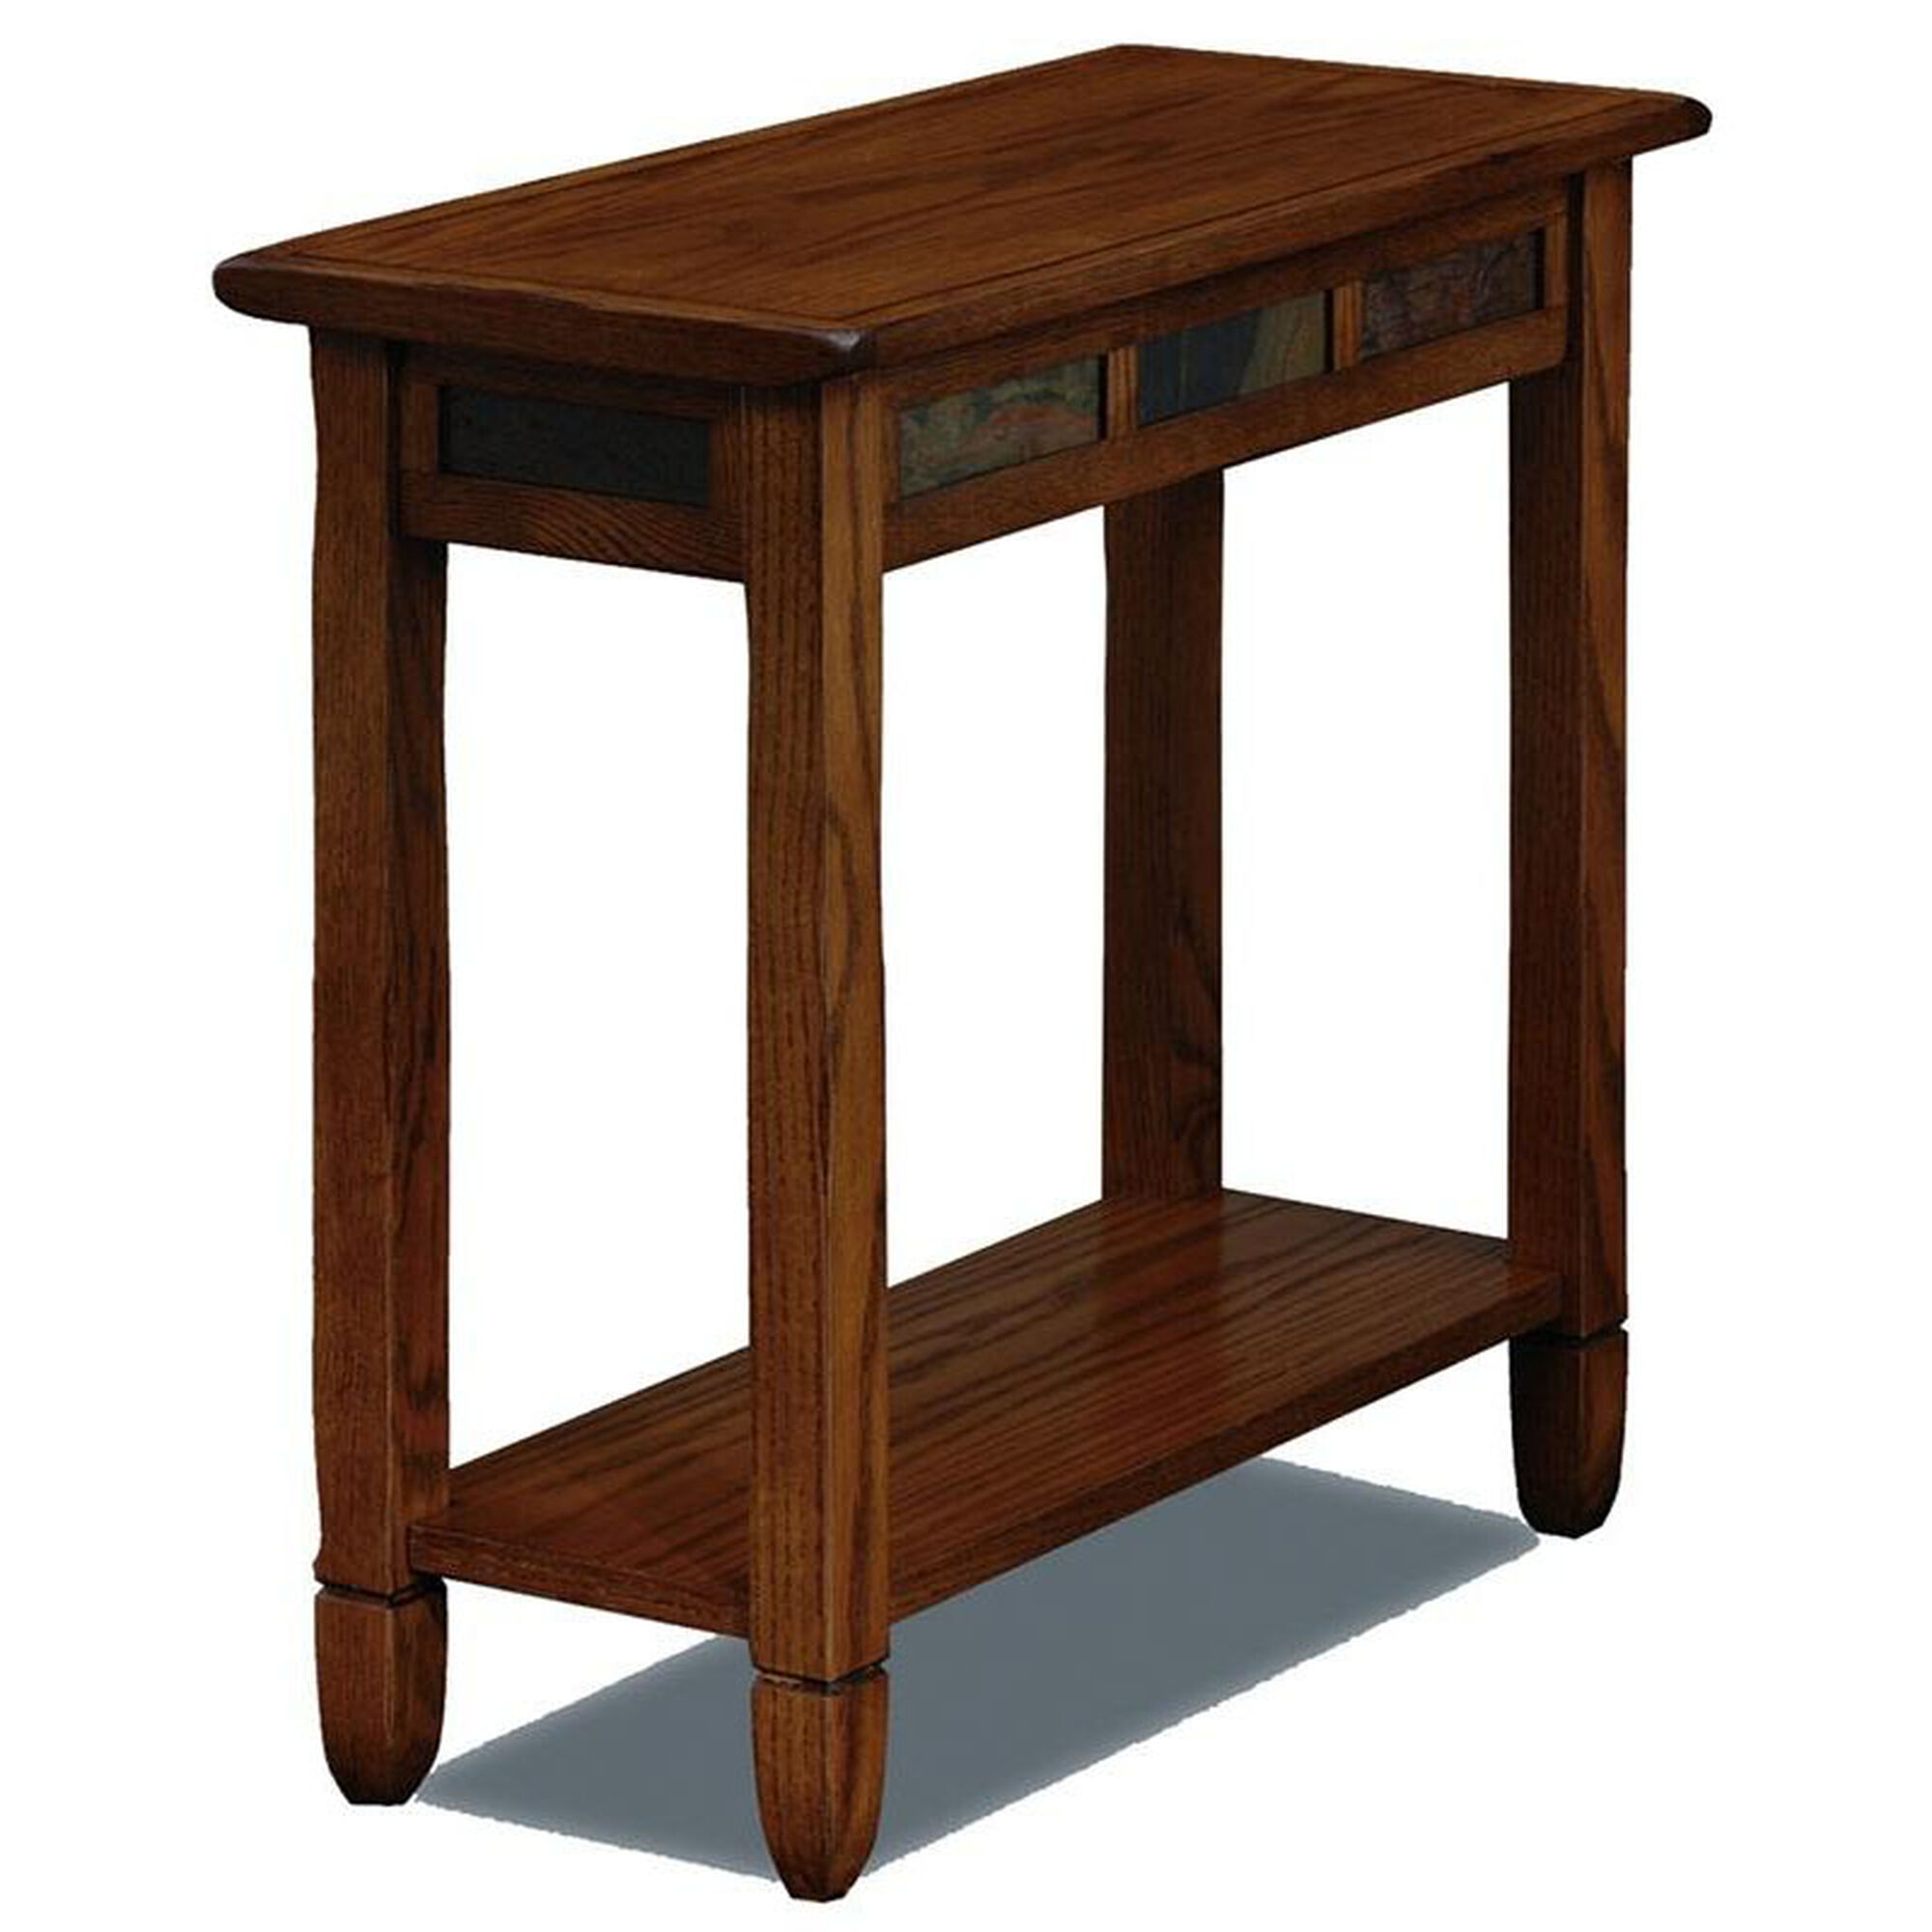 Leick furniture favorite finds 12 39 39 w x 24 39 39 h rustic end for 12 end table